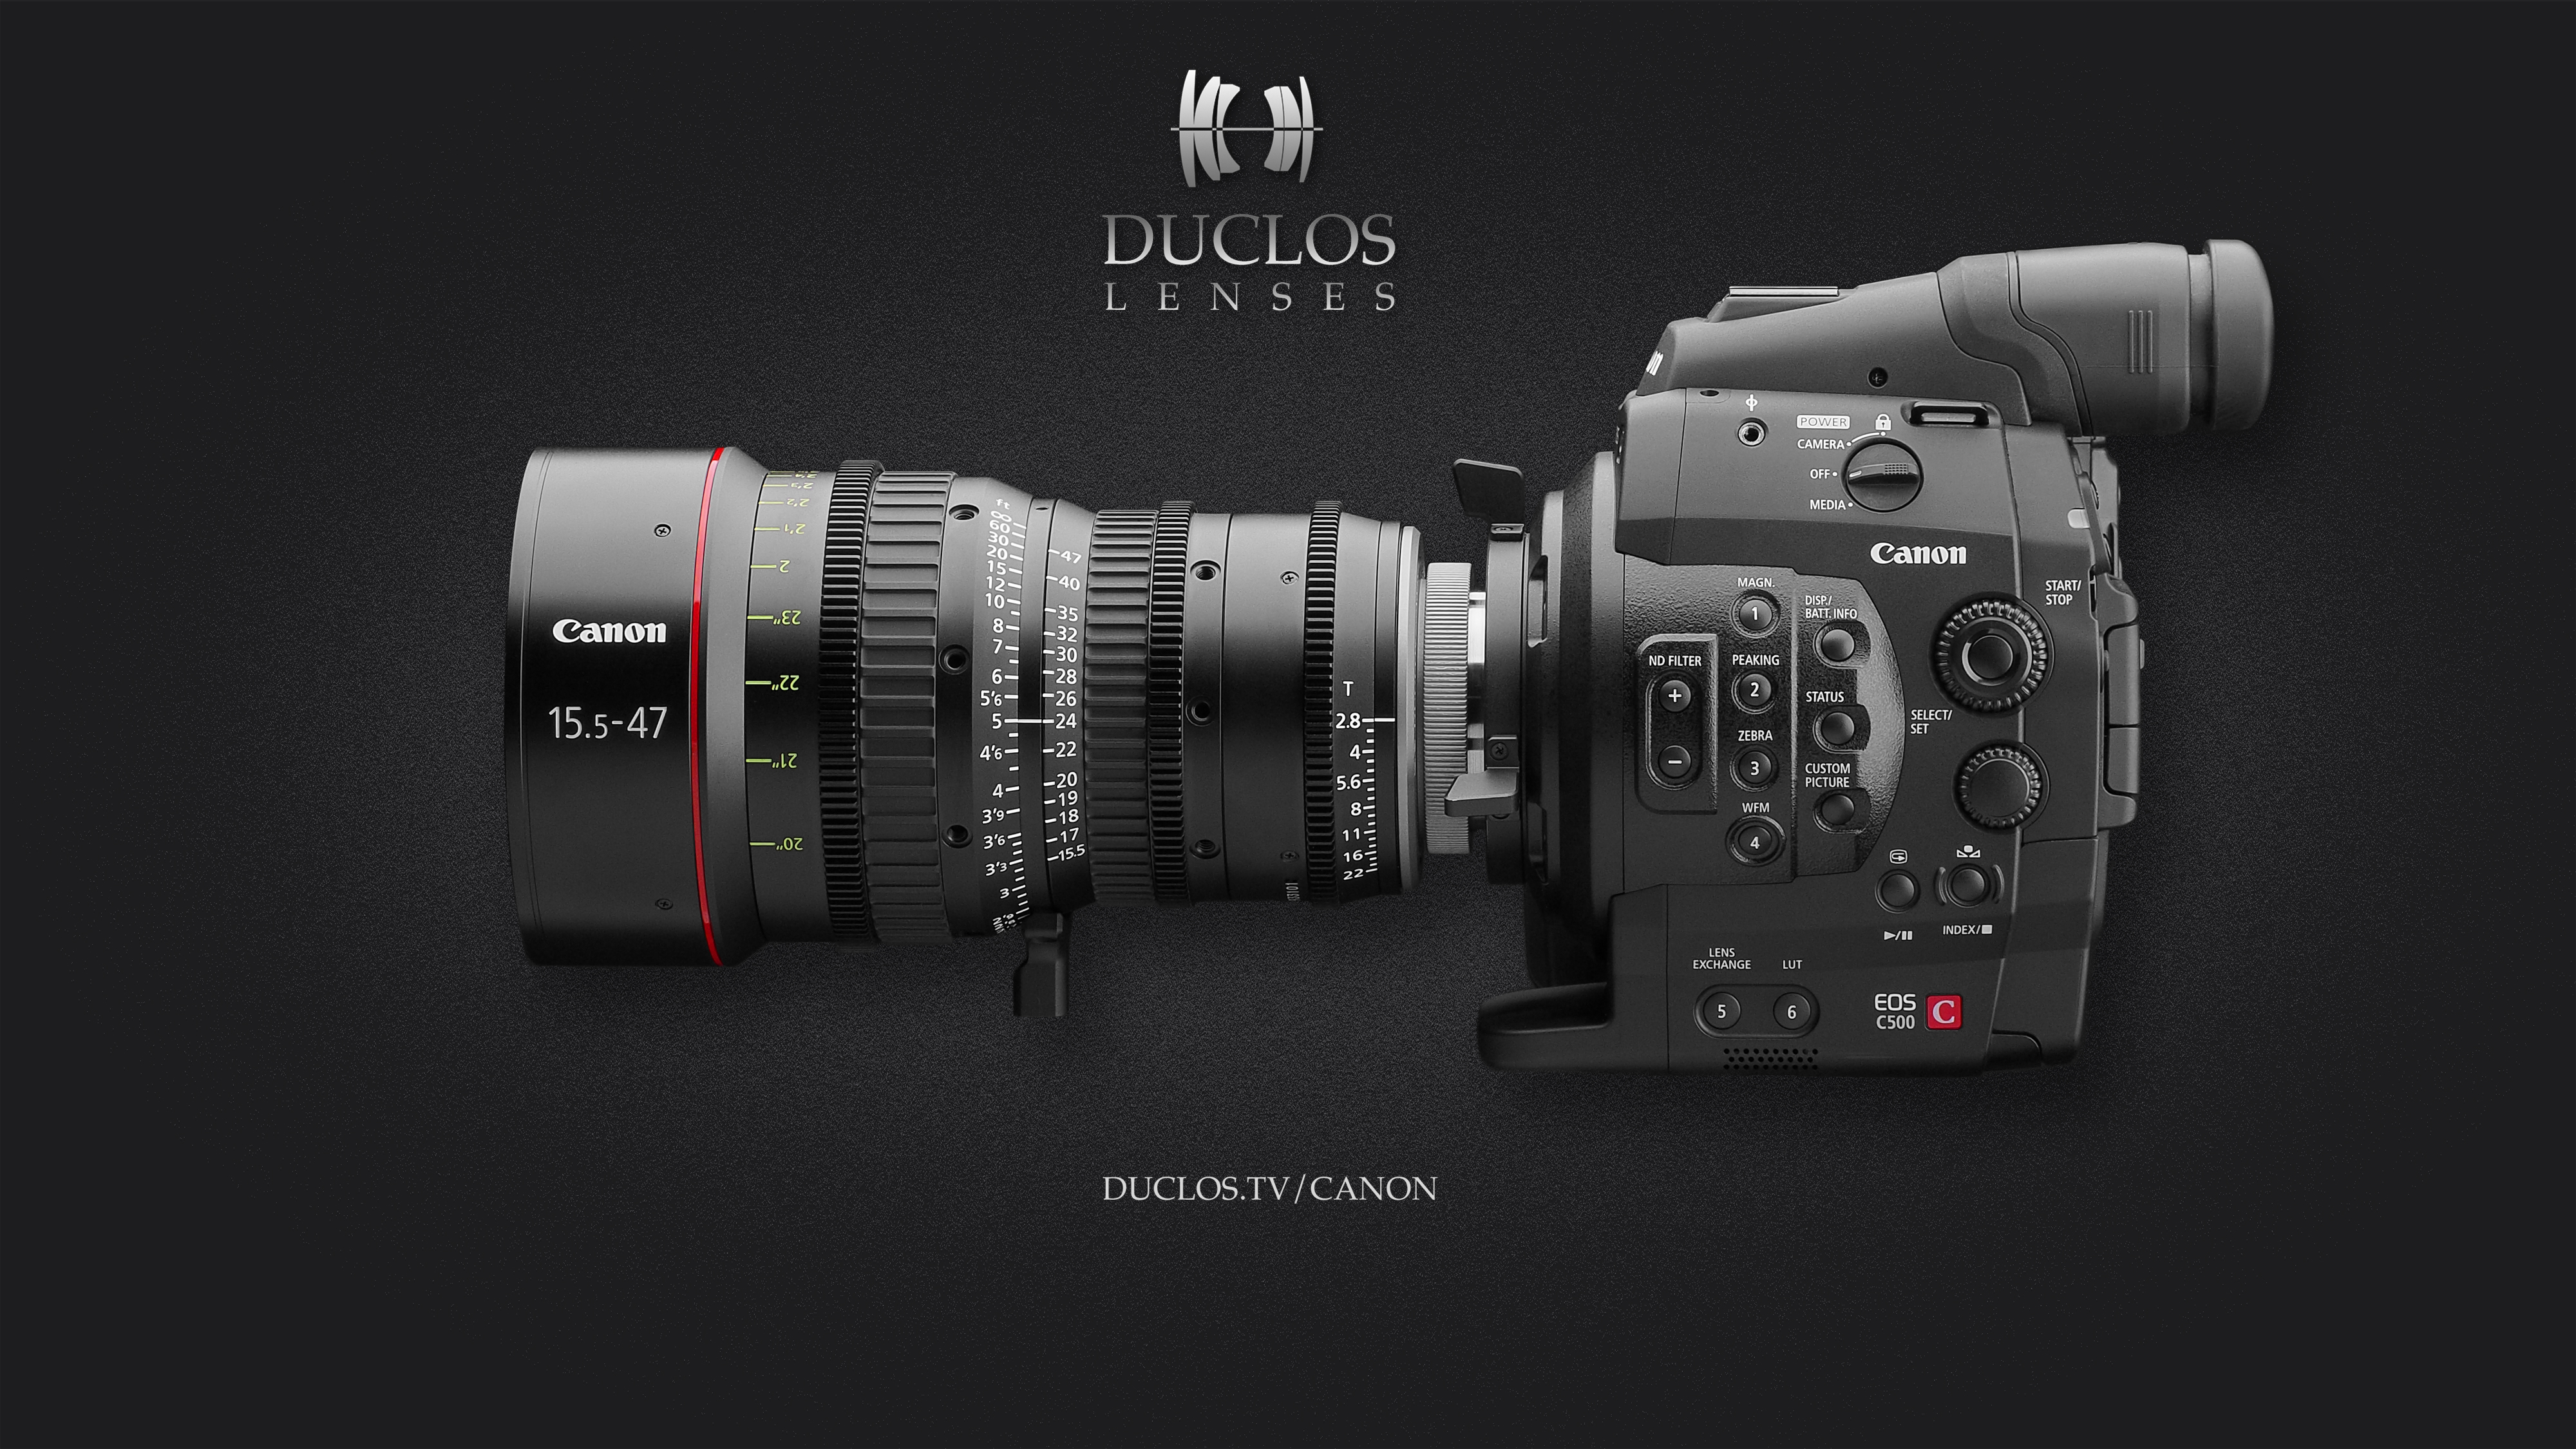 The Canon 15.5-47mm T2.8  featuring the Duclos Lenses Multi-Mount paired perfectly with a Canon C500.